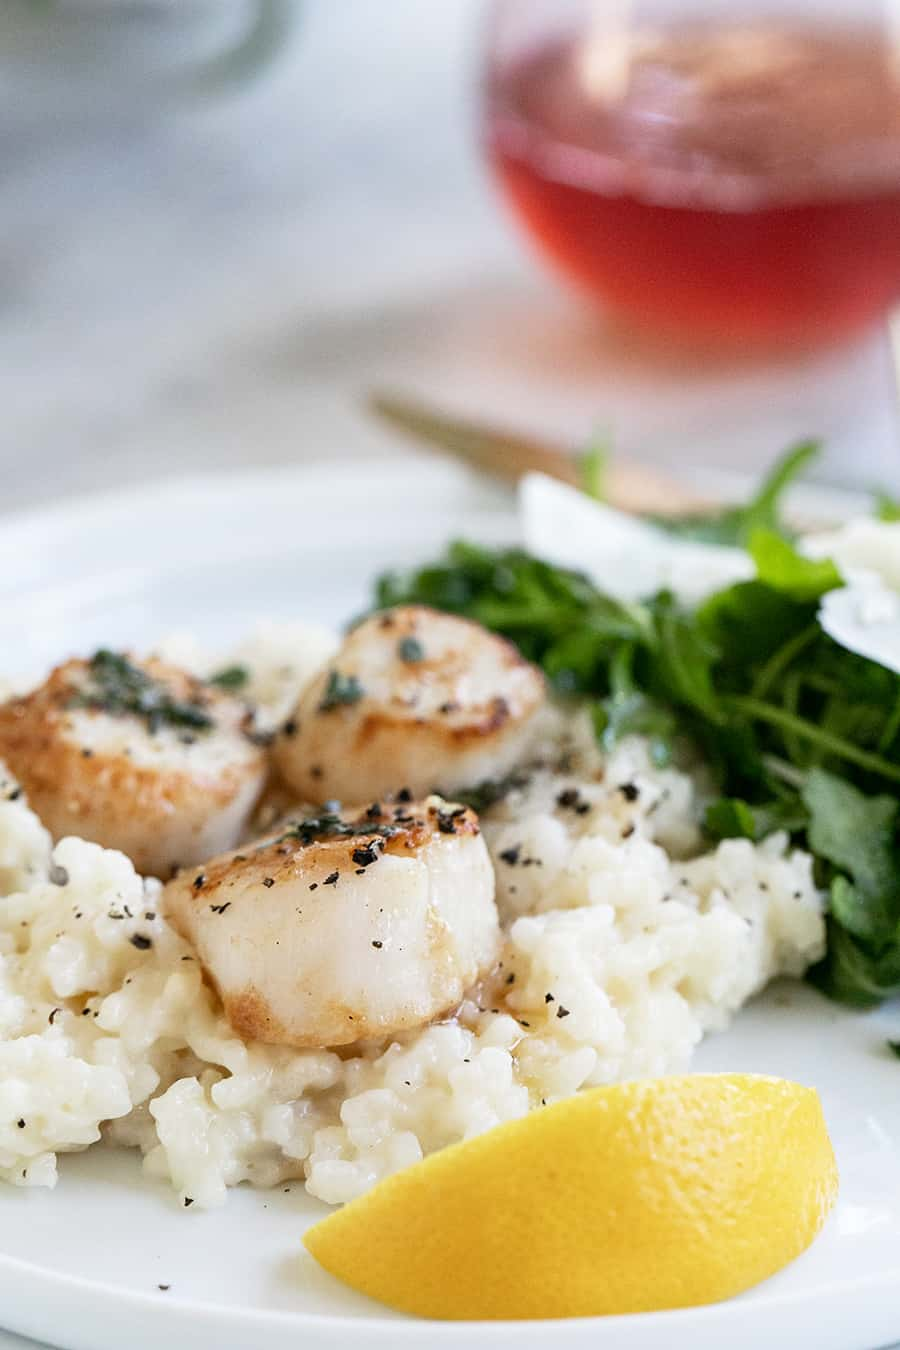 Scallops and risotto with lemon on a white plate.